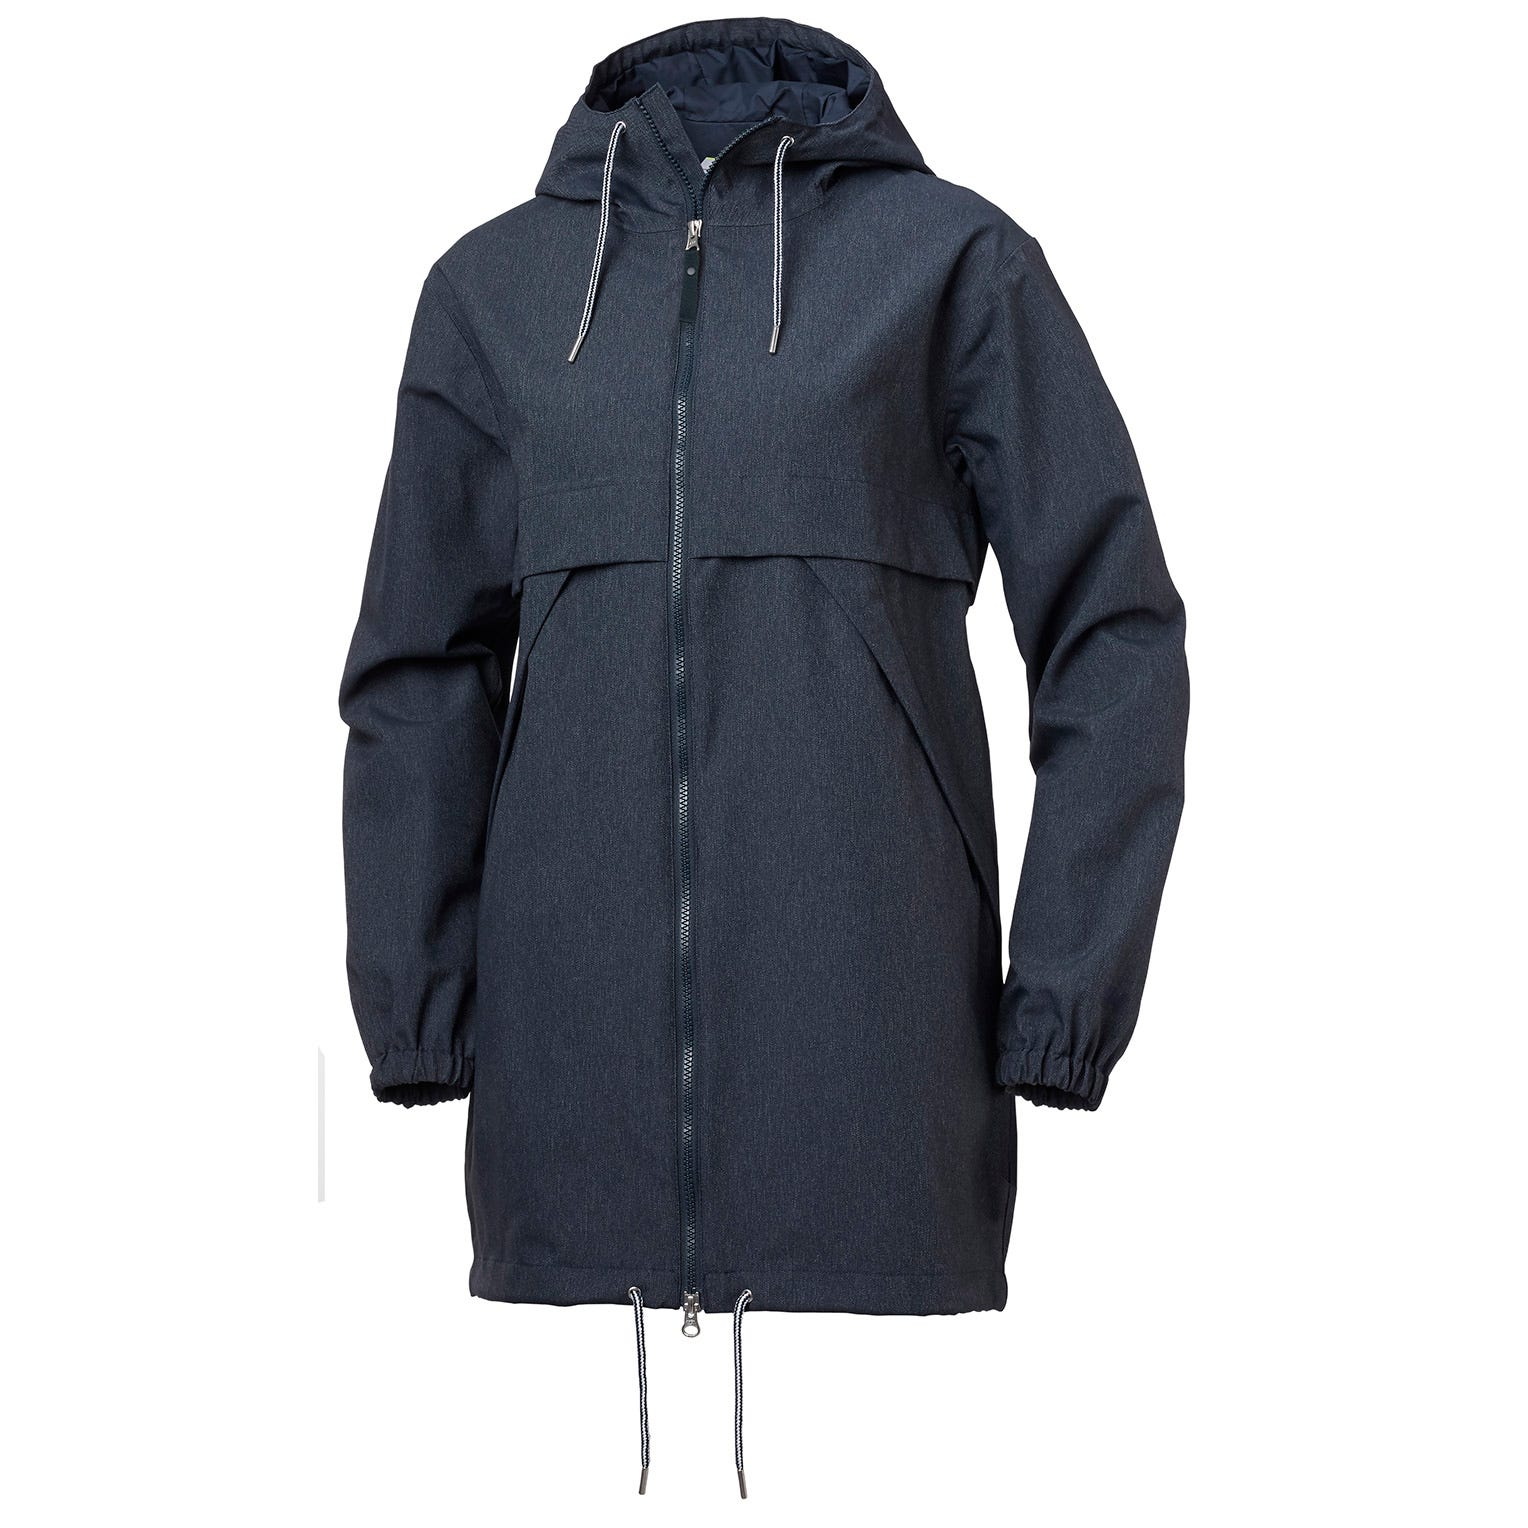 Helly Hansen Womens Jpn Raincoat Navy XS